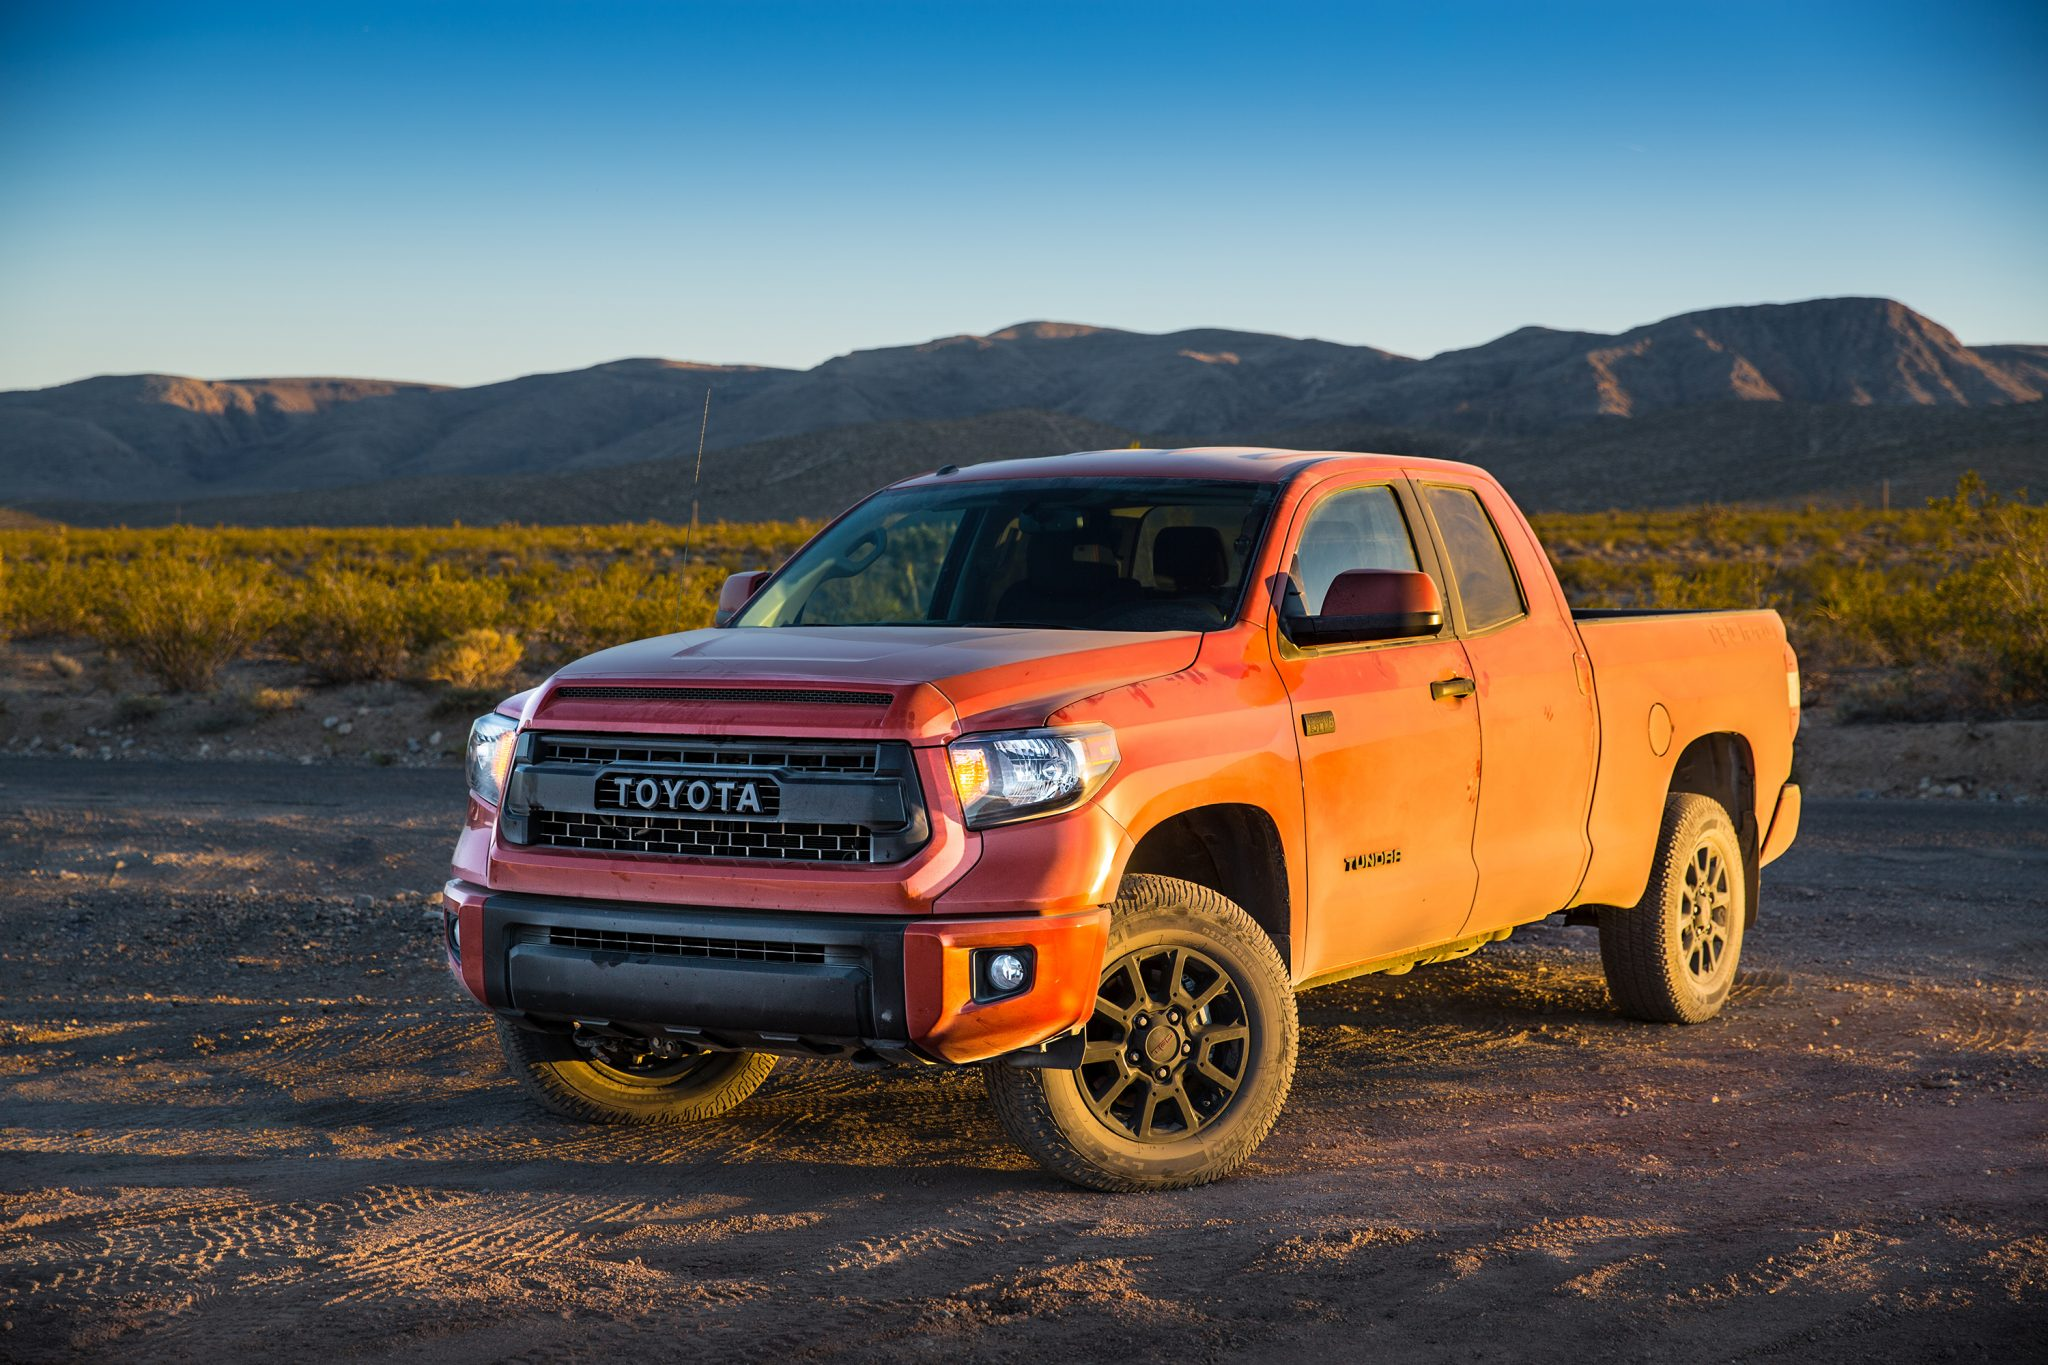 Toyota Tundra Trd Supercharged >> No More Trd Supercharger Says Toyota The News Wheel